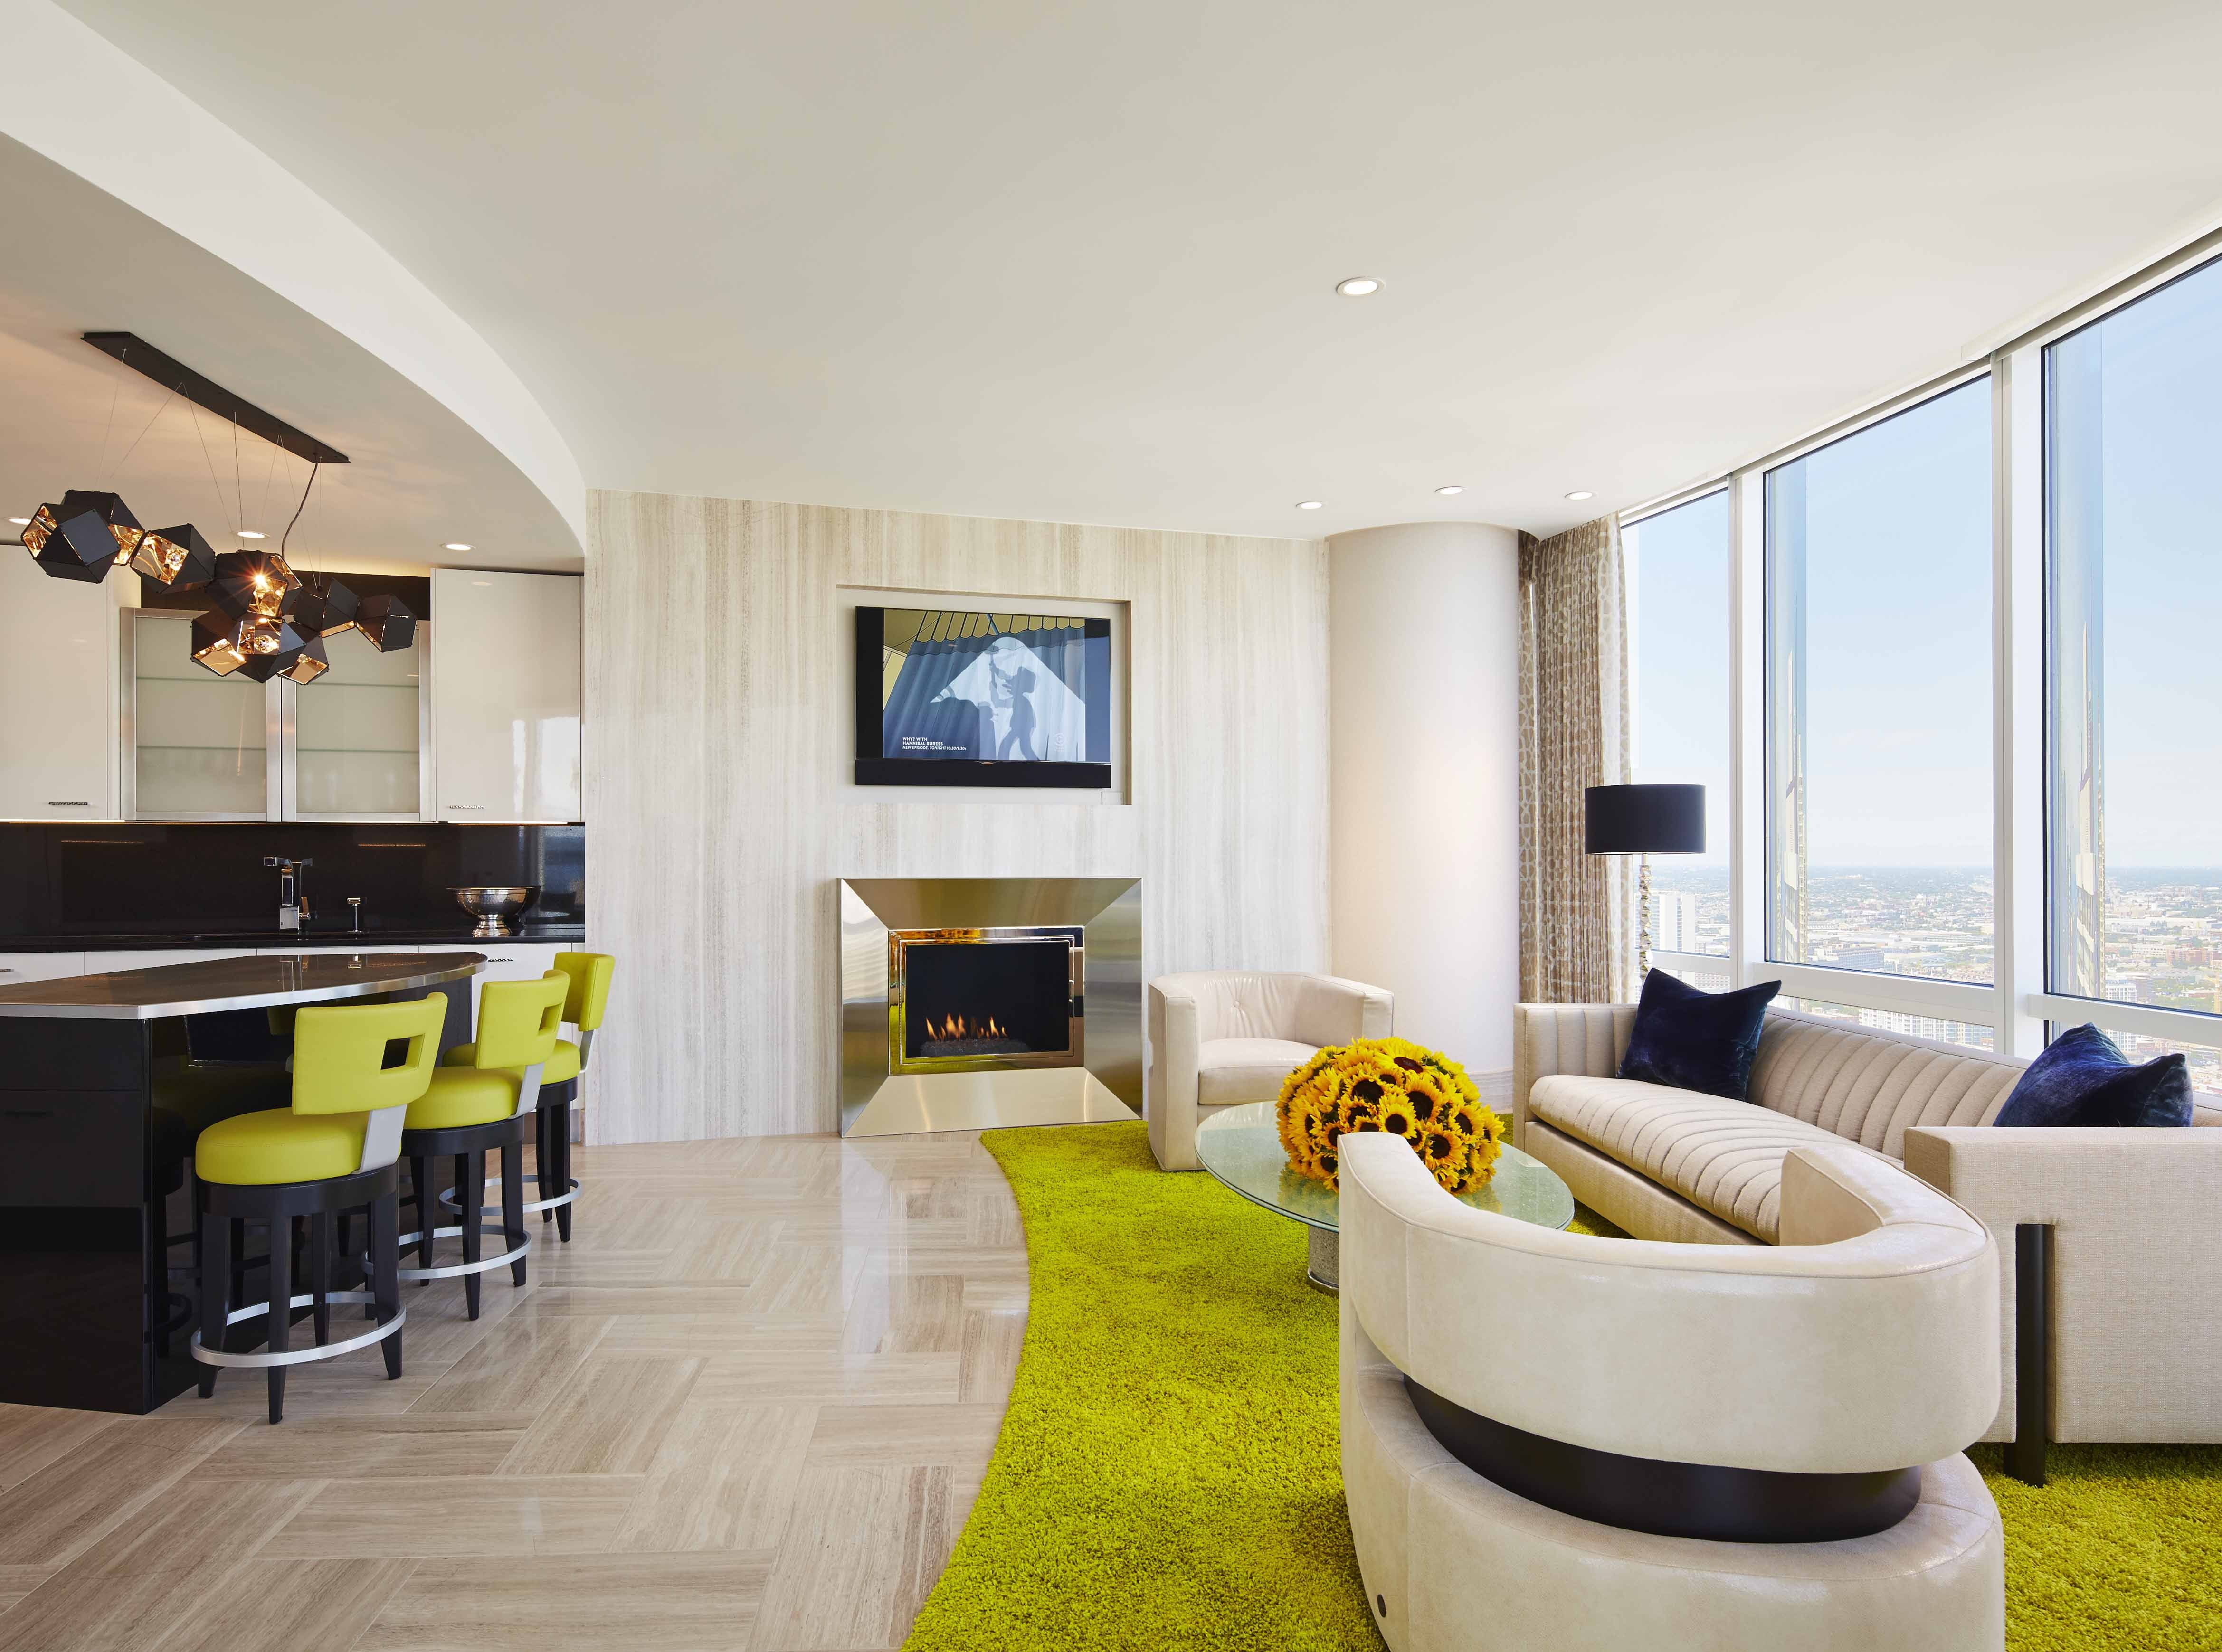 Get Inside Trump Towers Interior Design in Chicago | Tower, Chicago ...